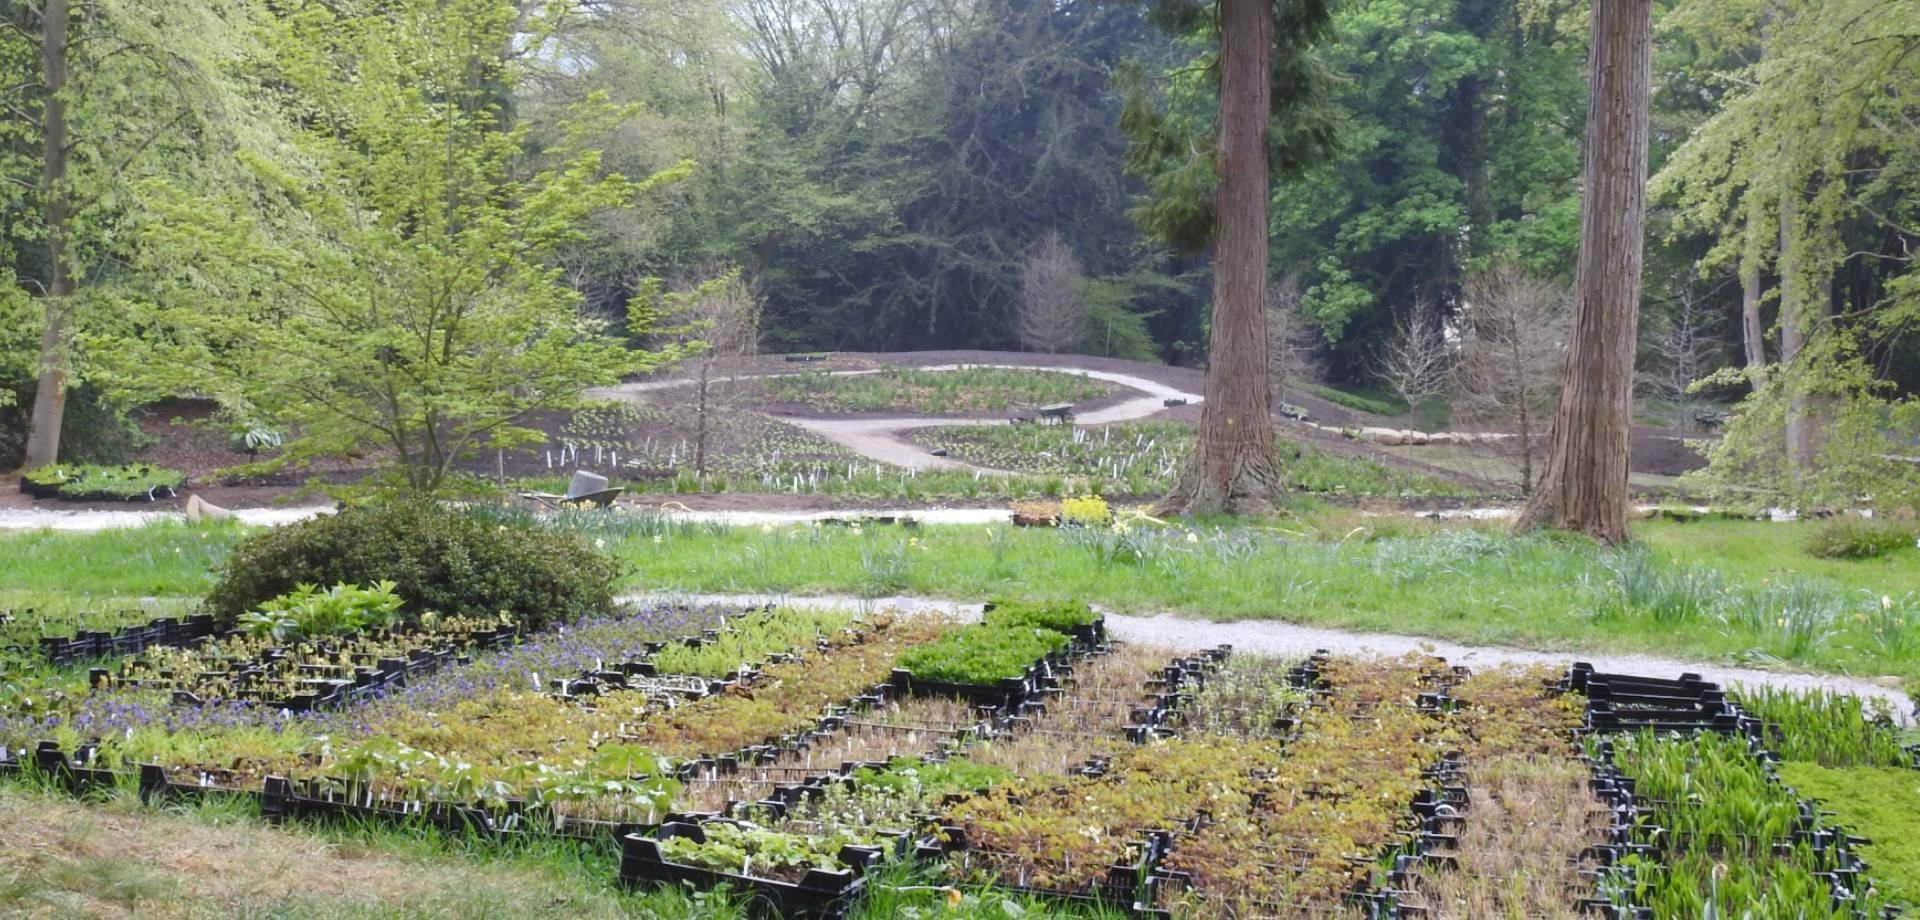 In the Chatsworth Garden: The wet glade